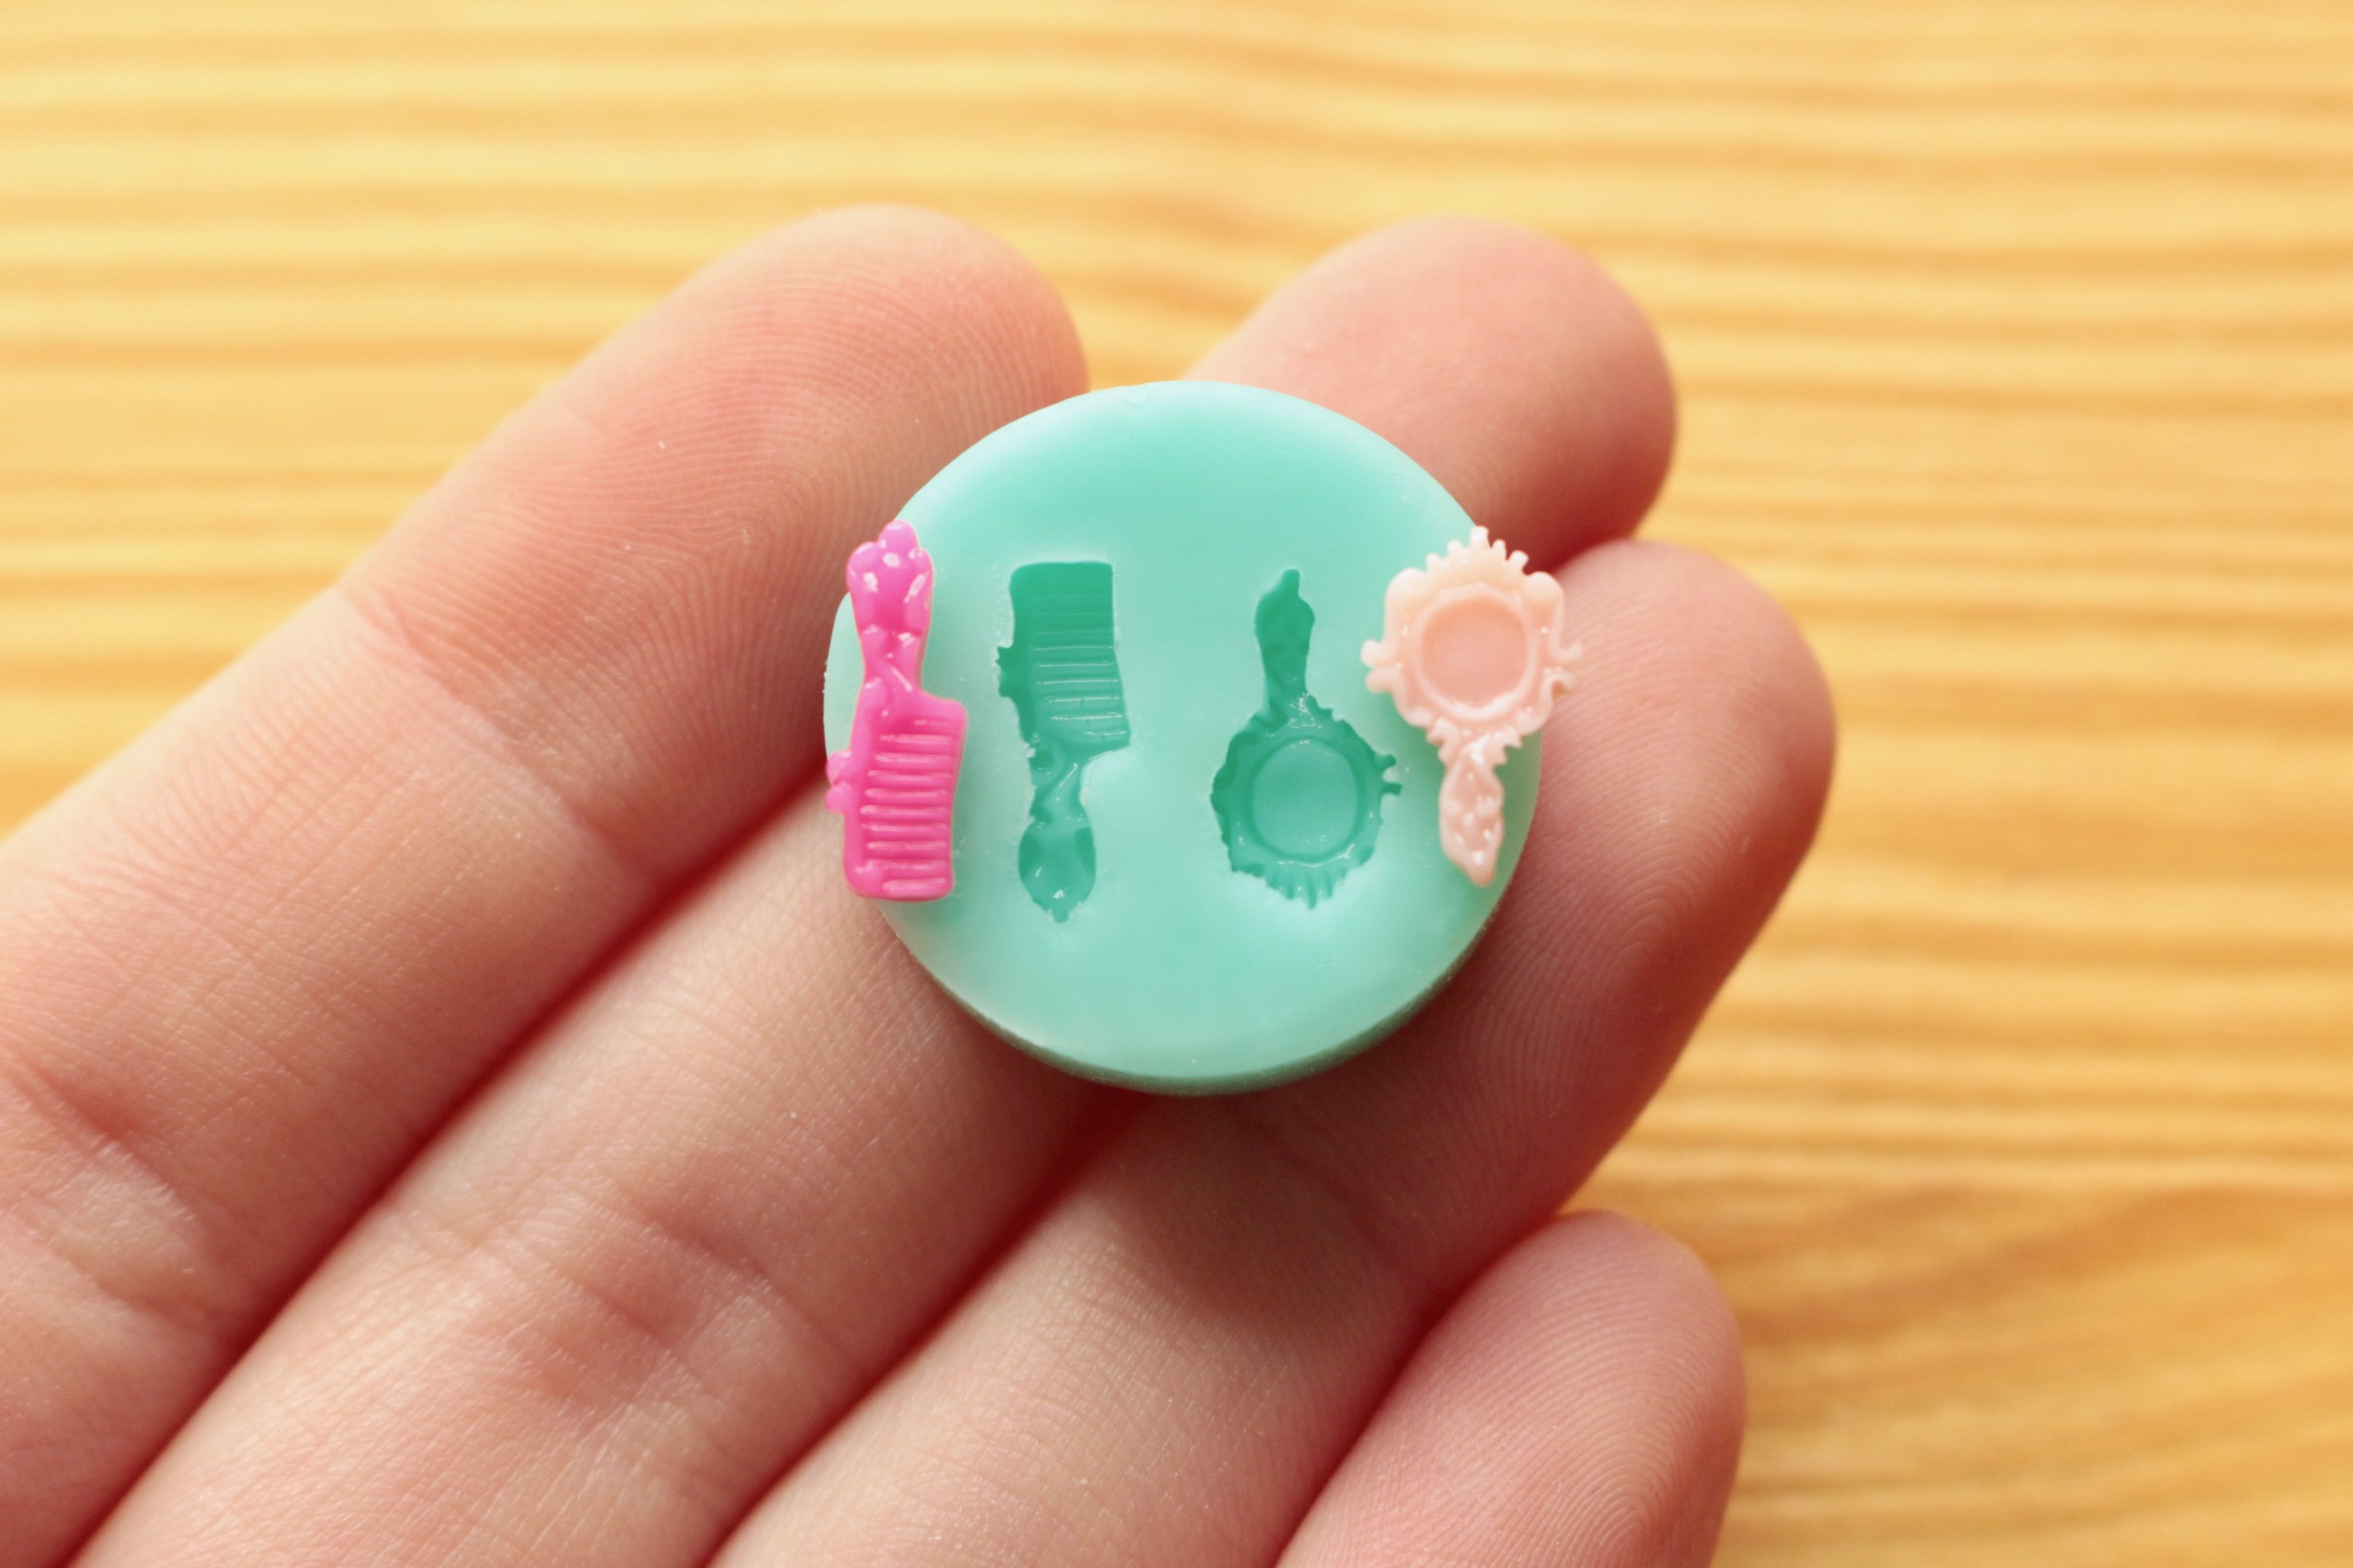 Round Cupcake base silicone mold for polymer clay food materials epoxy resin